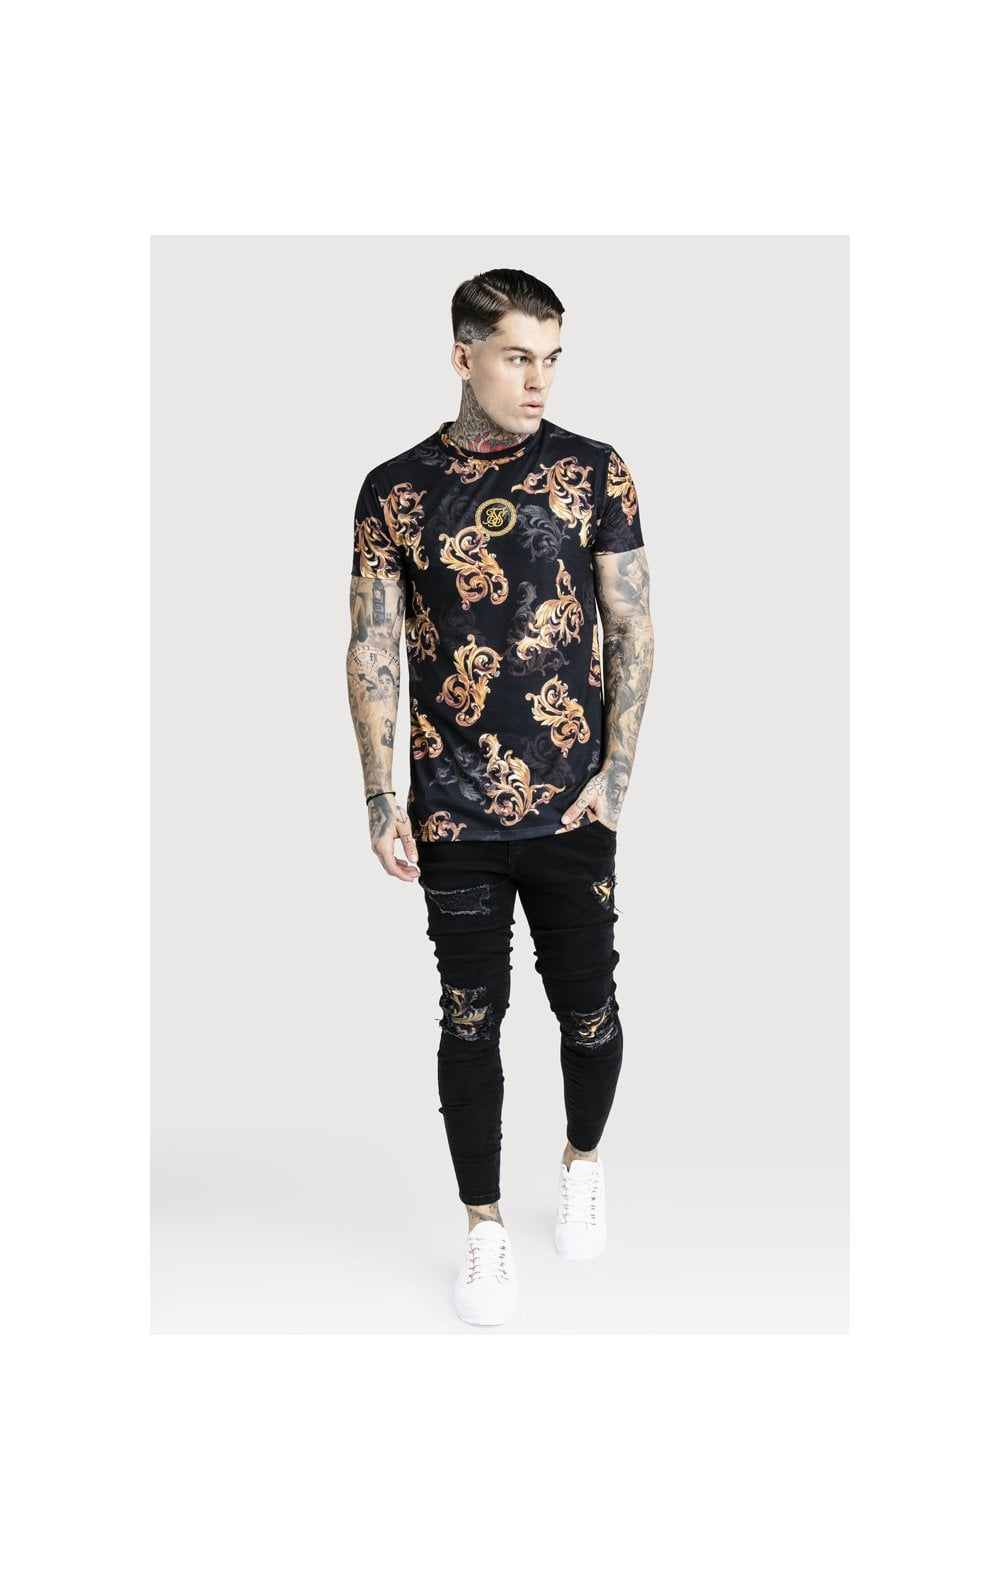 SikSilk x Dani Alves Reverse Collar Tee - Black (2)